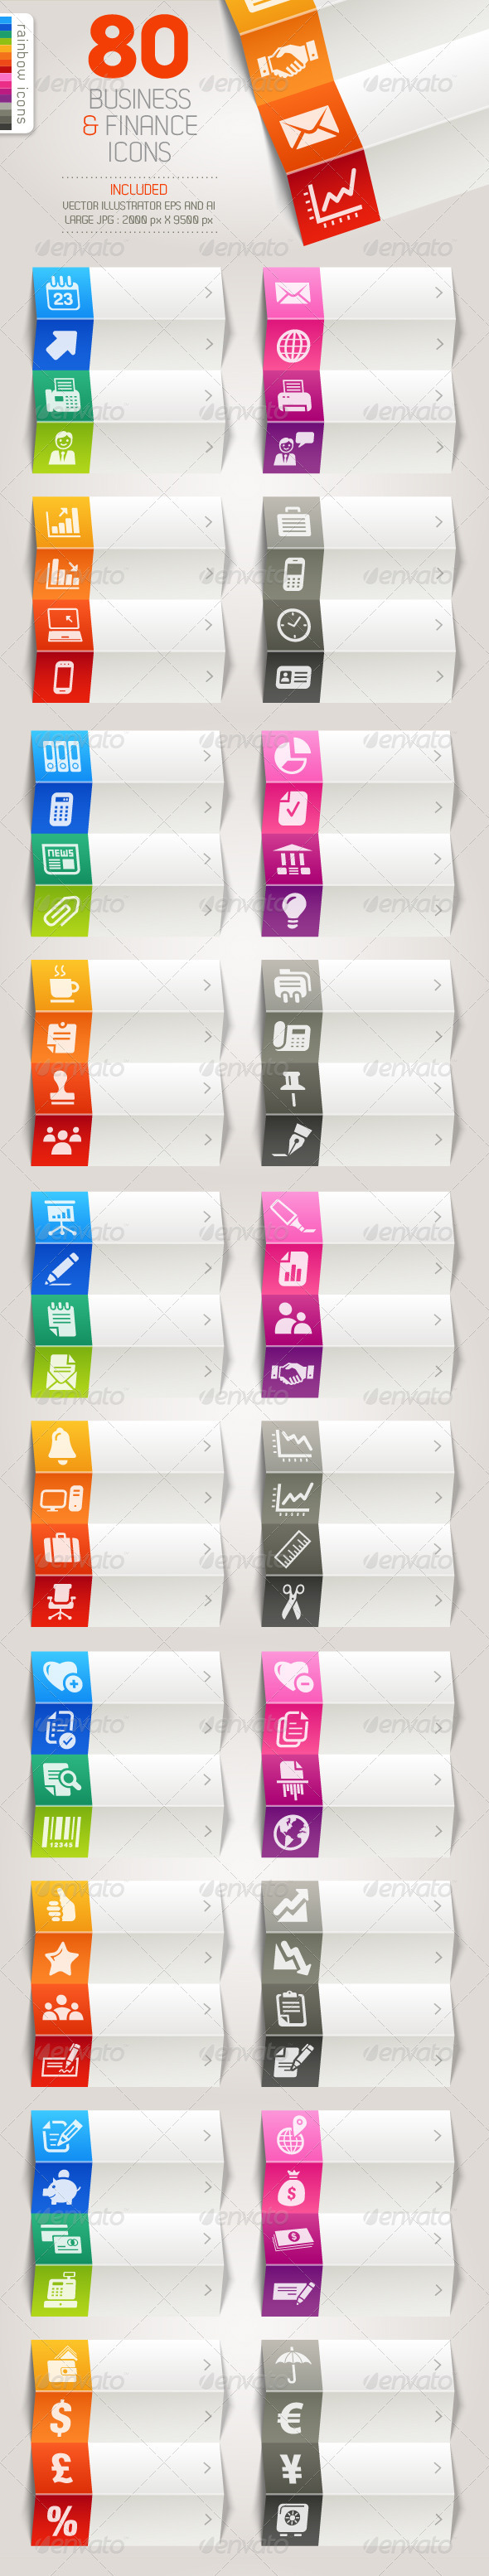 80 Business and Finance Icons - Rainbow - Icons